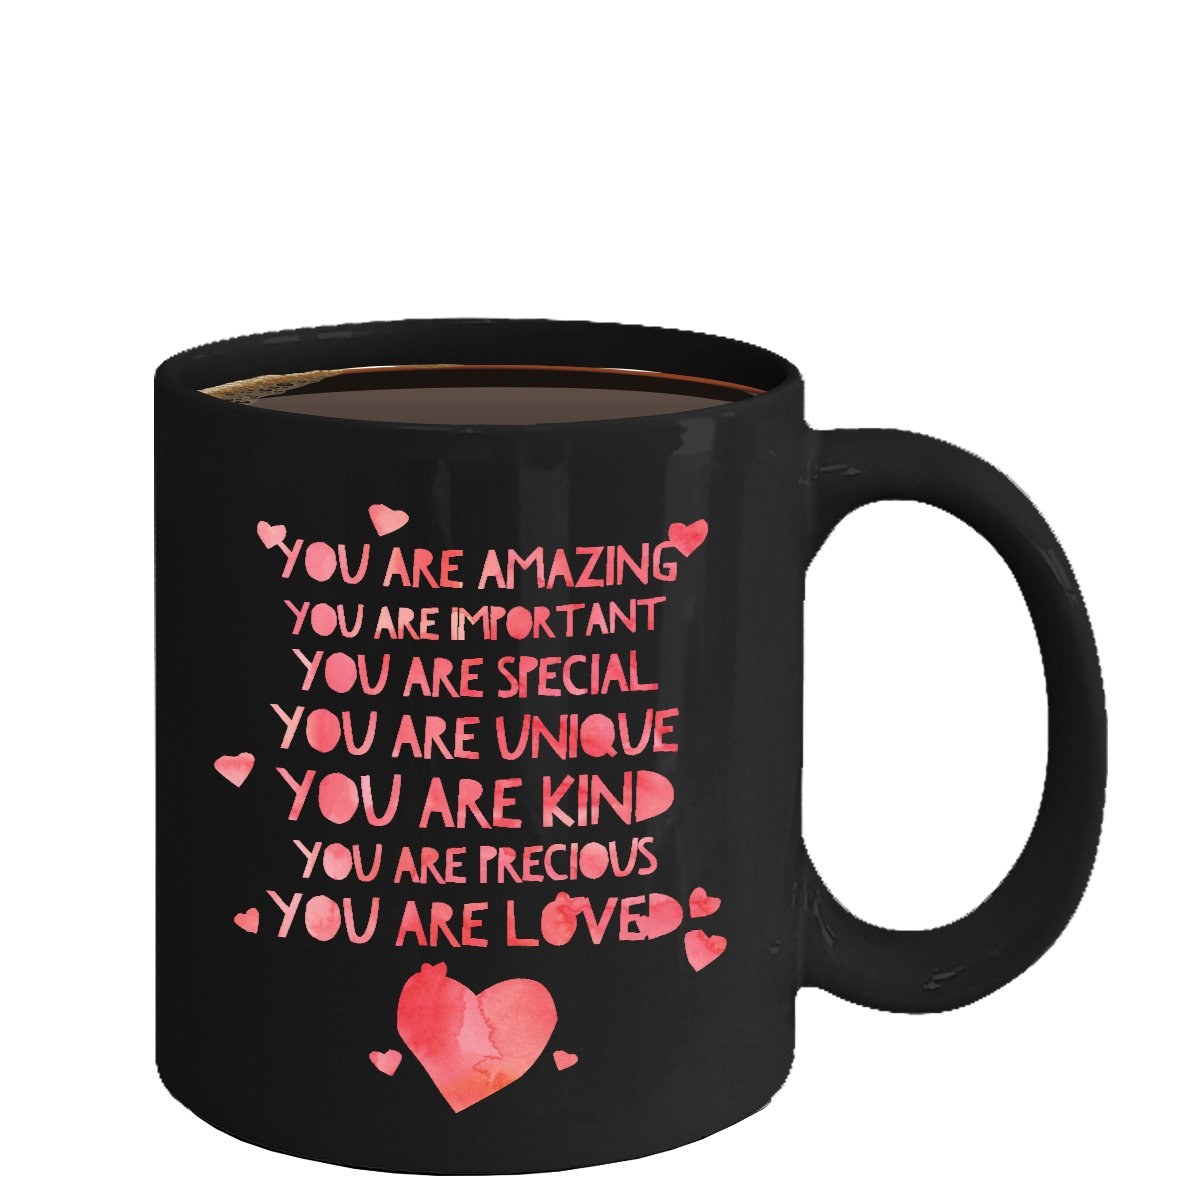 Love Ceramic Coffee Mug - You Are Loved - Cute Large Cup (Black) - Best Gift for Men, Women